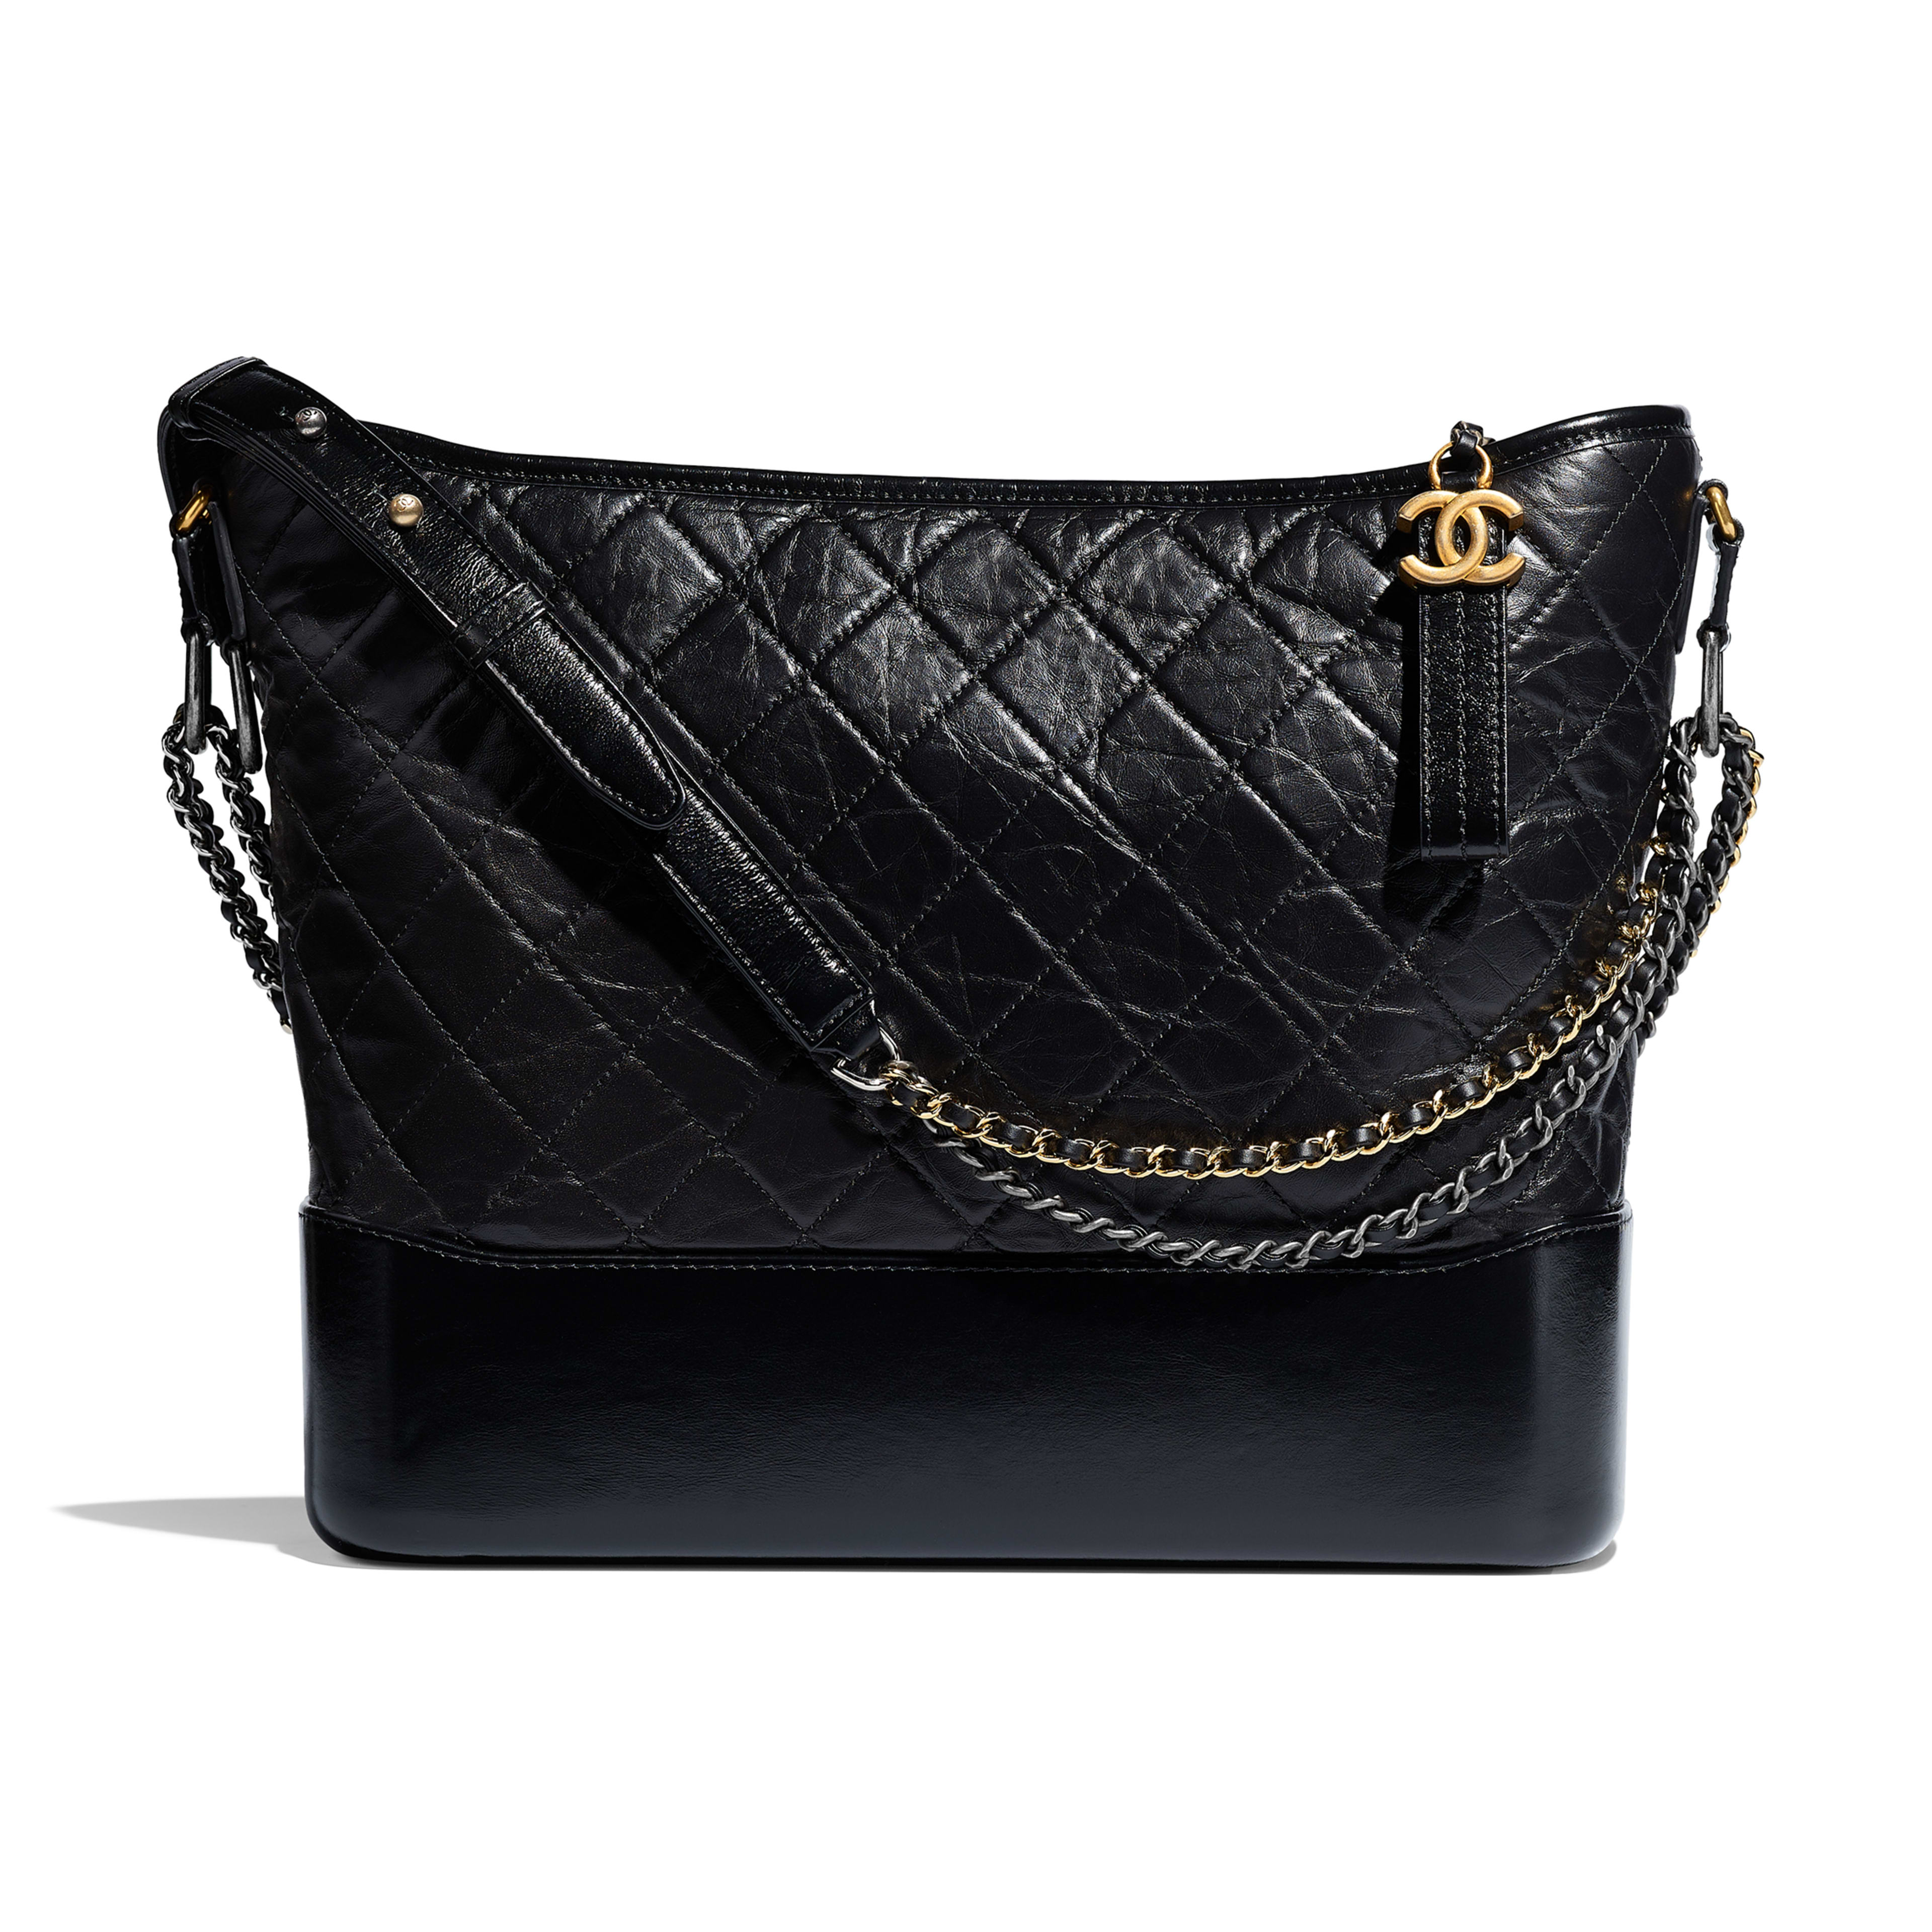 CHANEL'S GABRIELLE Large Hobo Bag - Black - Aged Calfskin, Smooth Calfskin, Silver-Tone & Gold-Tone Metal - Default view - see full sized version